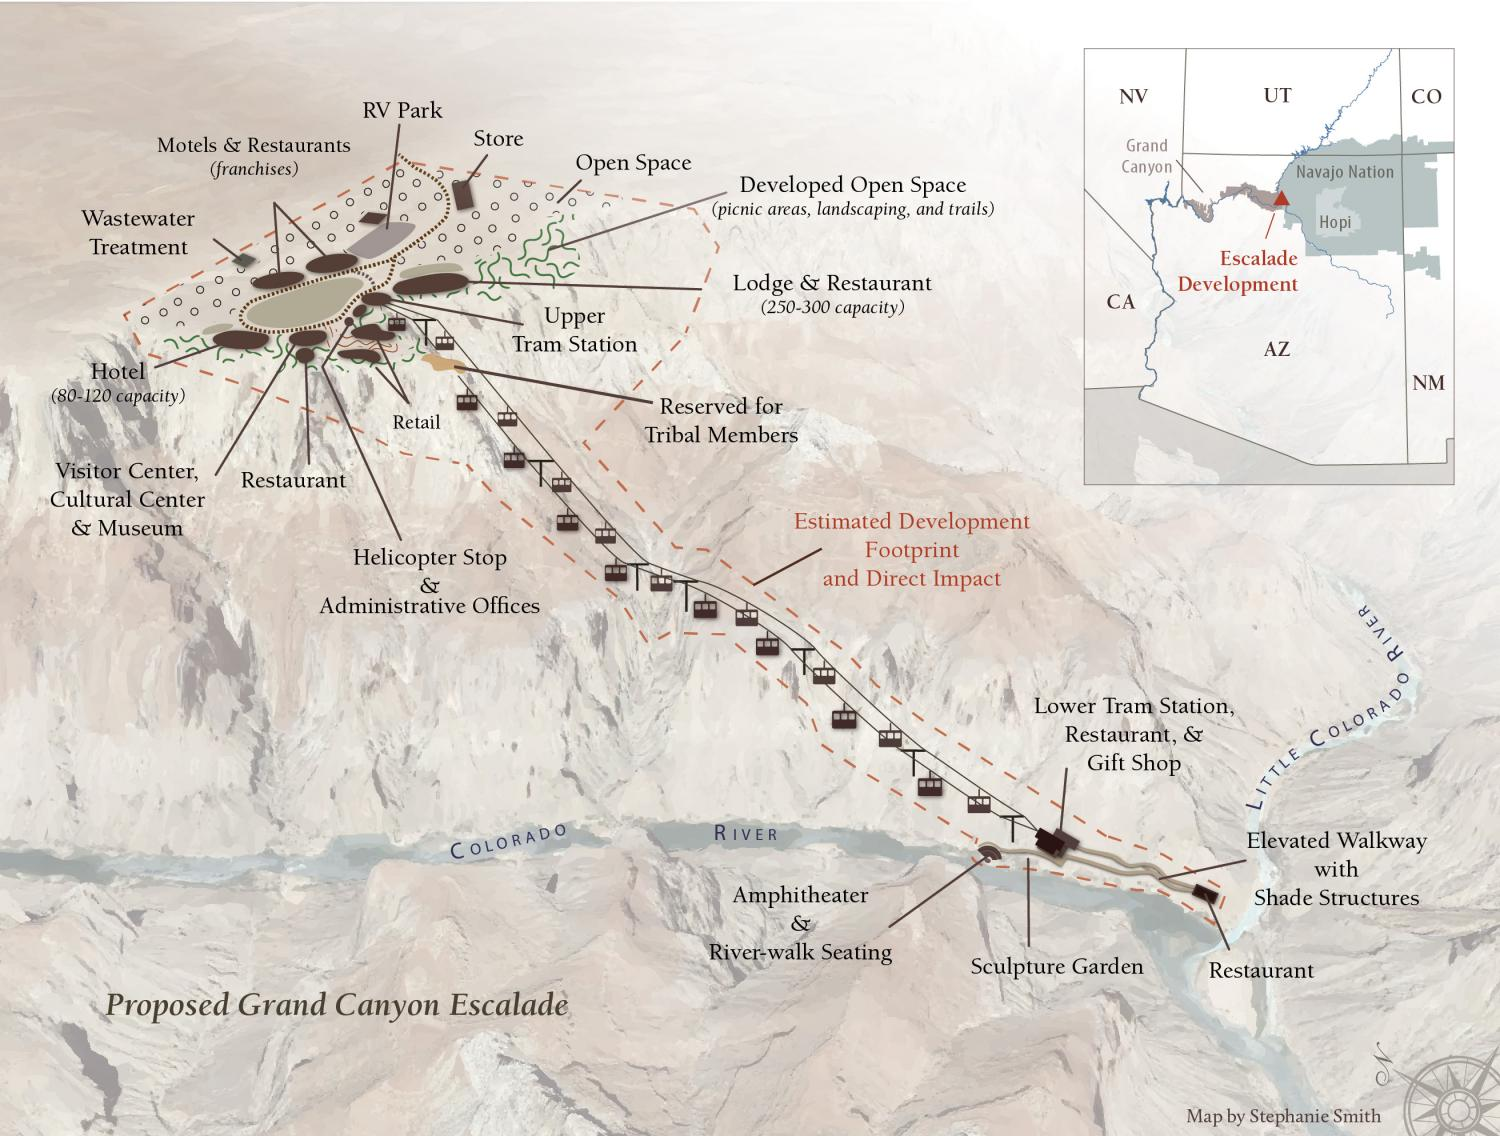 Map of Proposed Grand Canyon Escalade